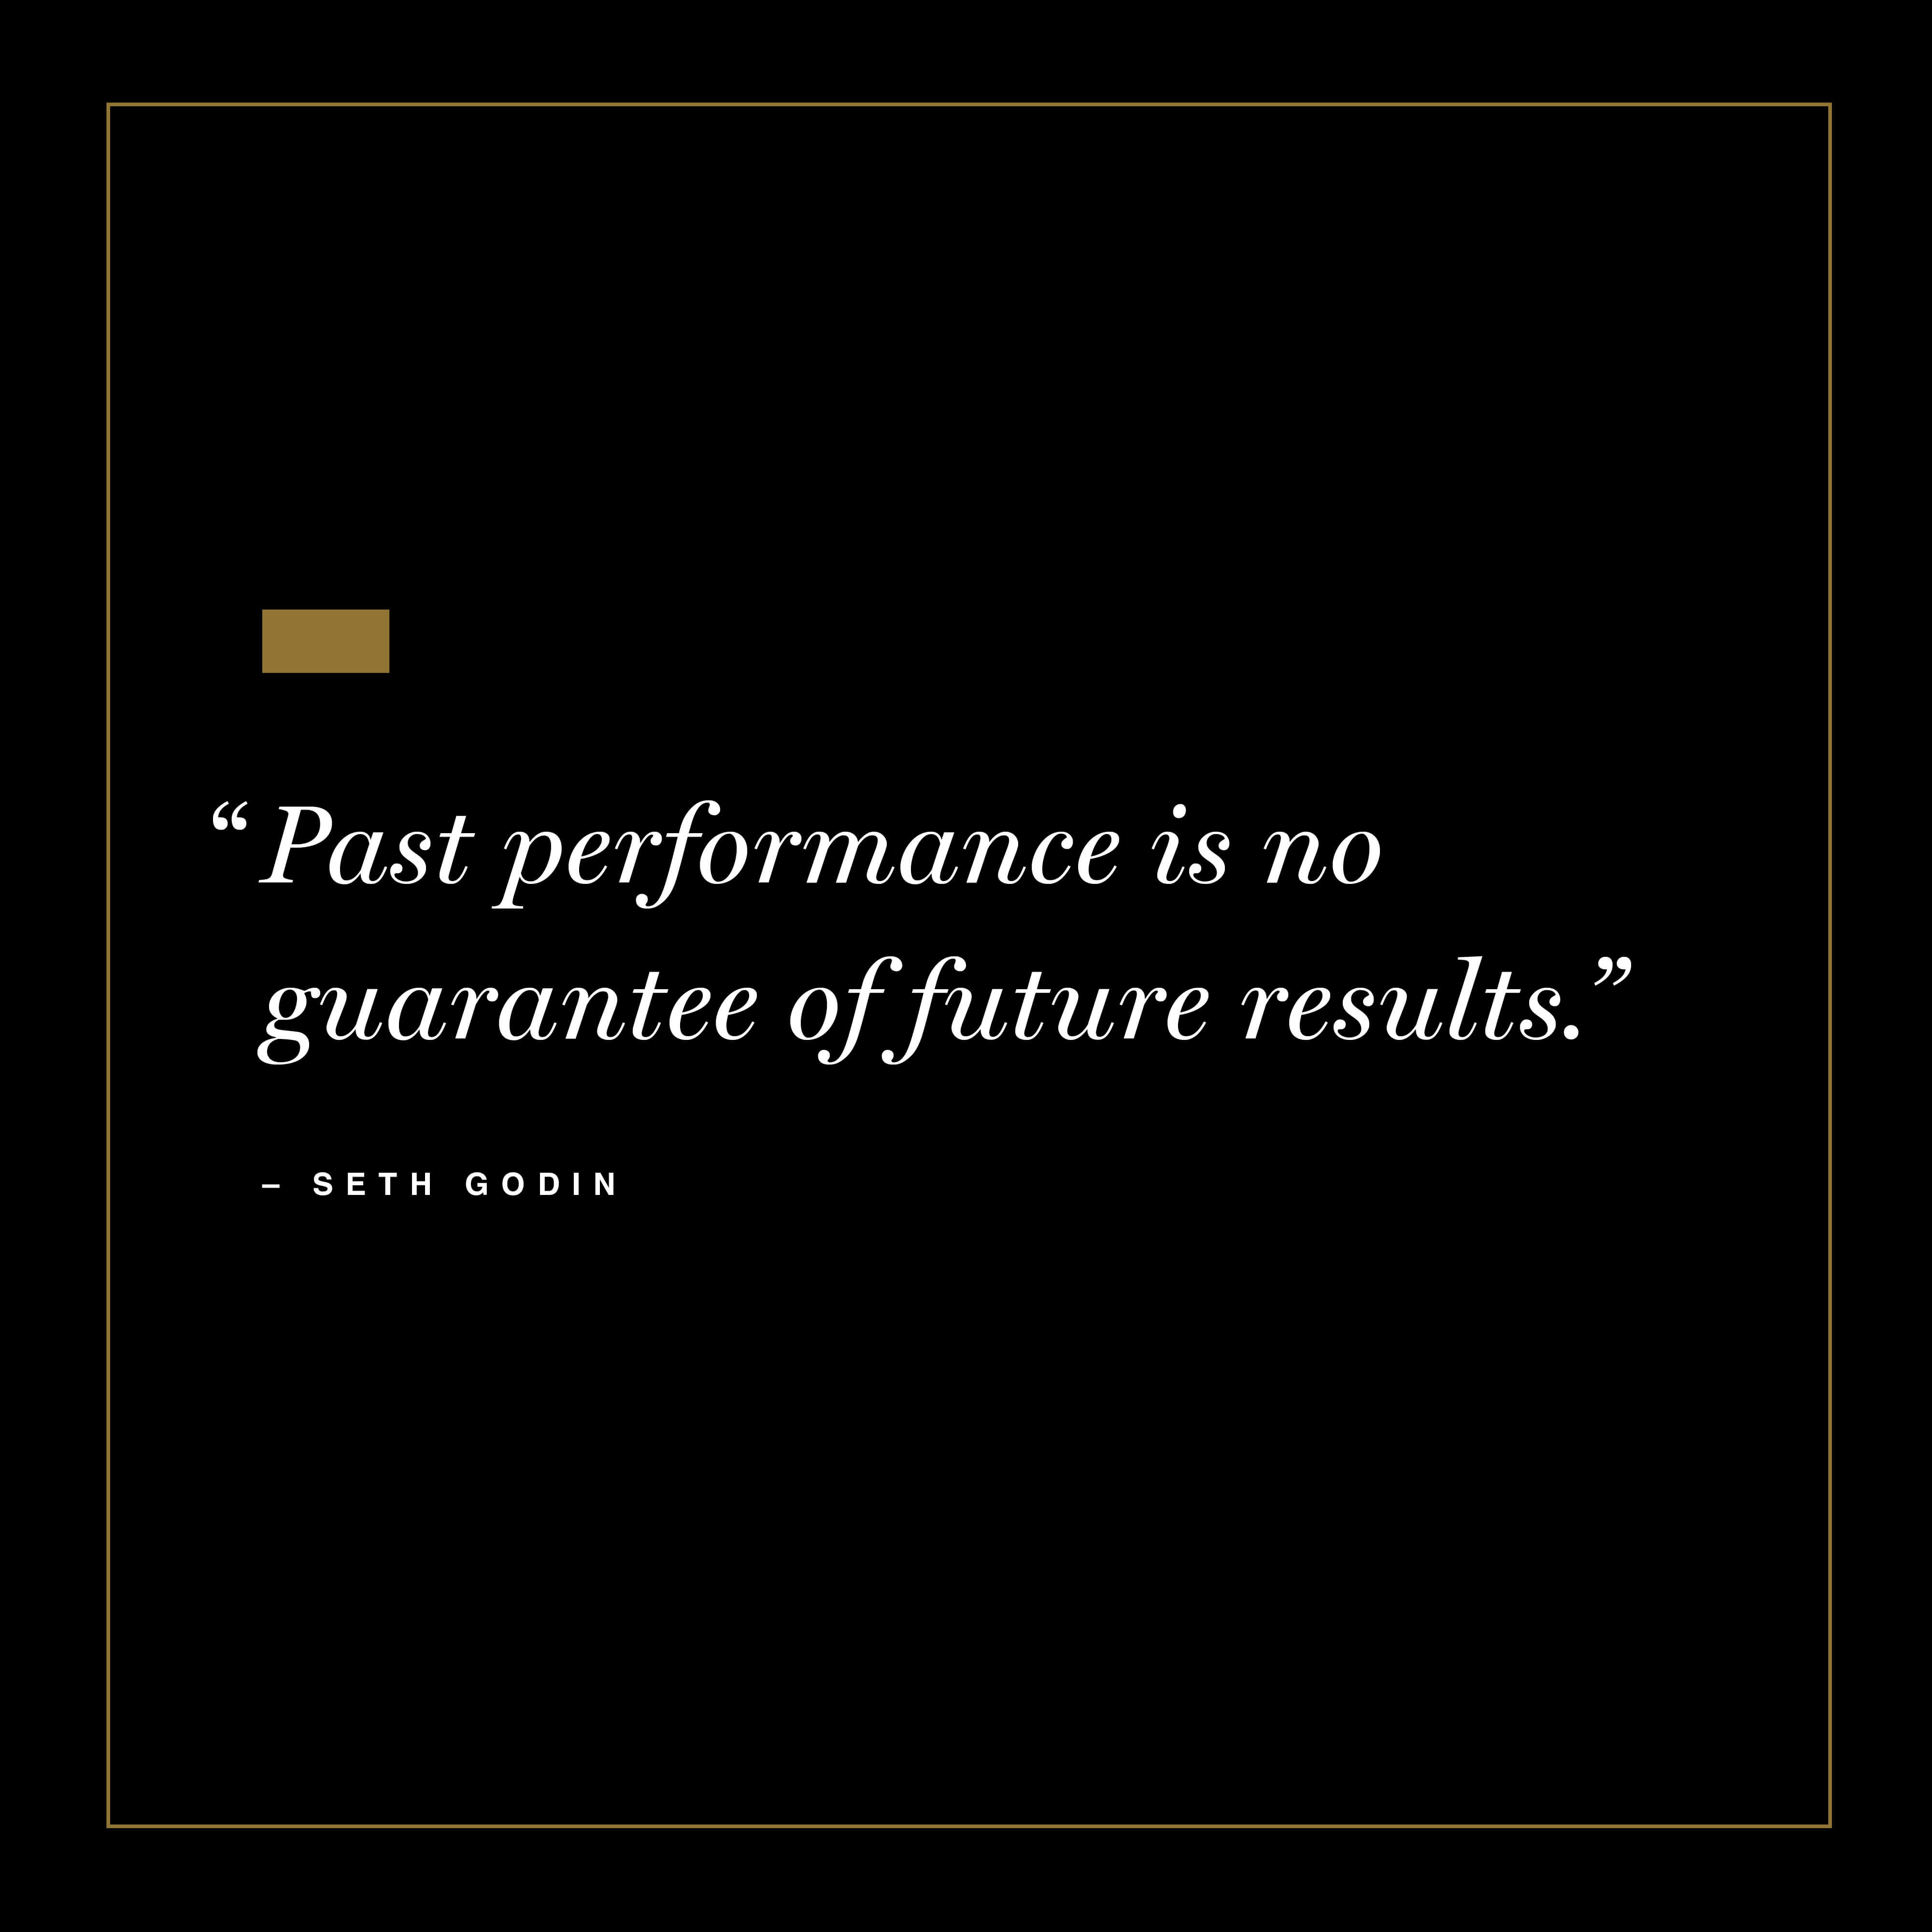 Past performance is no guarantee of future results